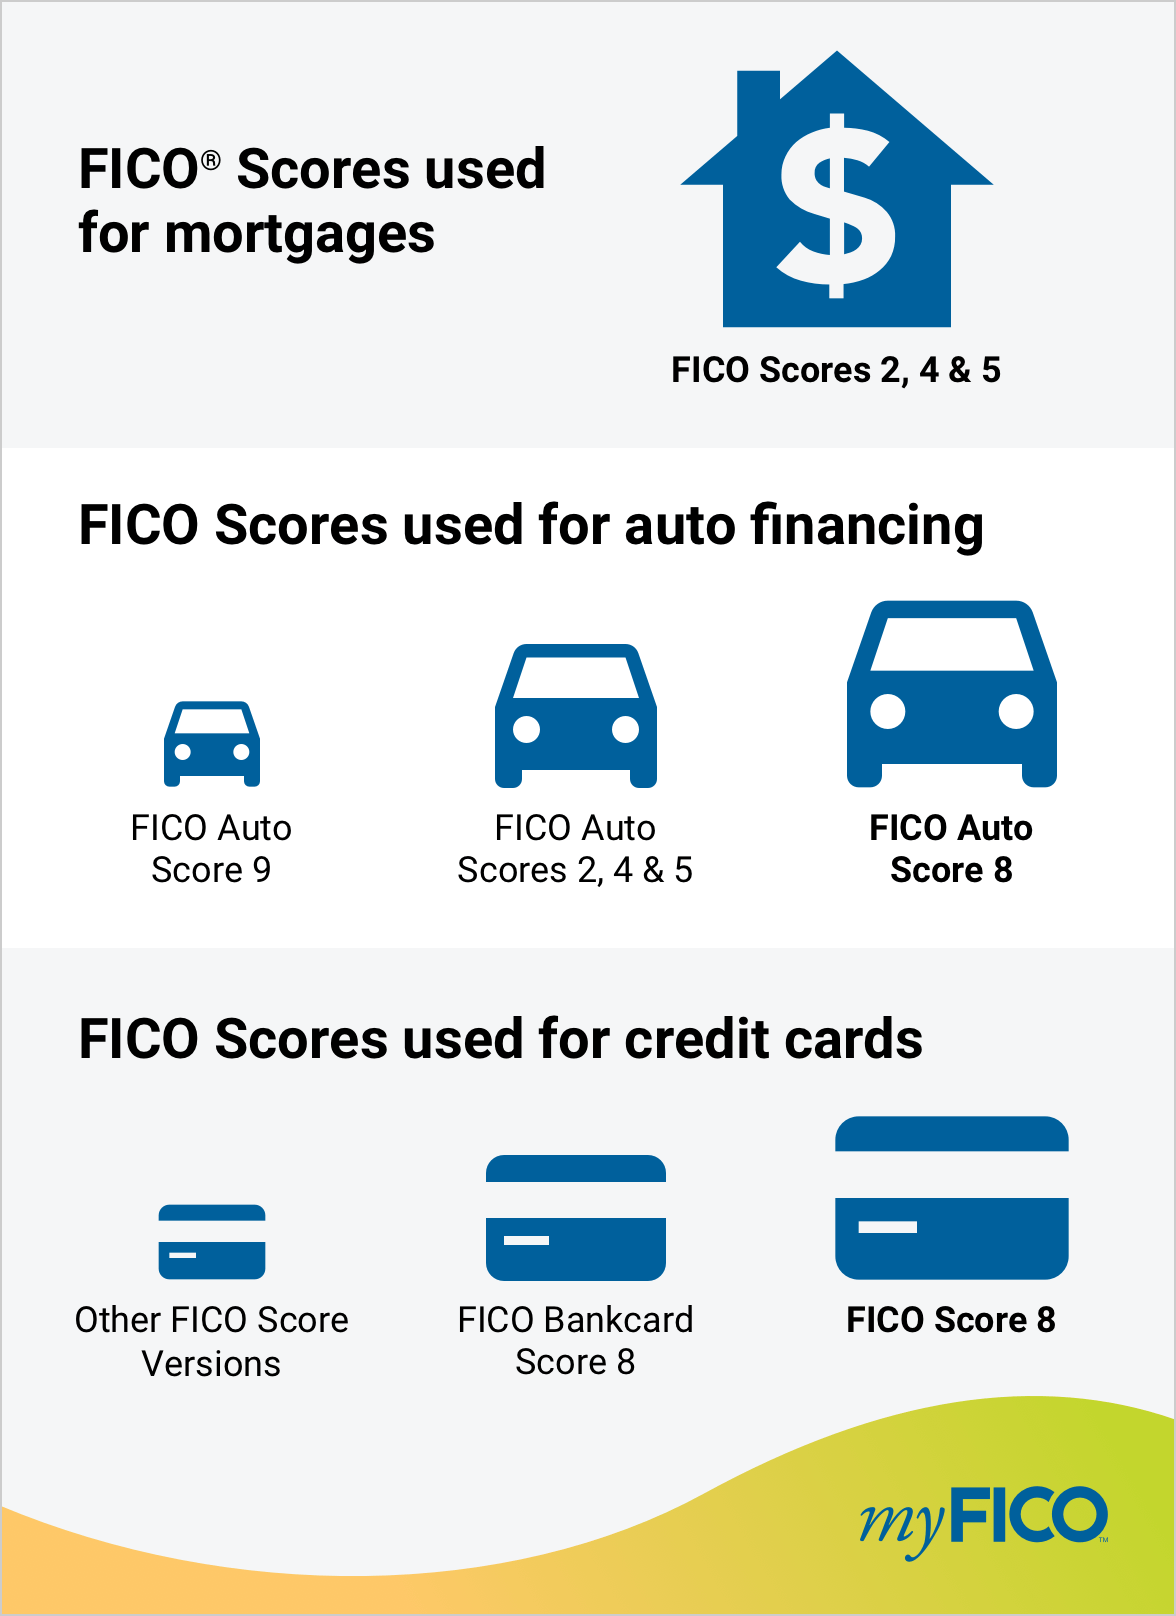 FICO® Scores used for mortgages